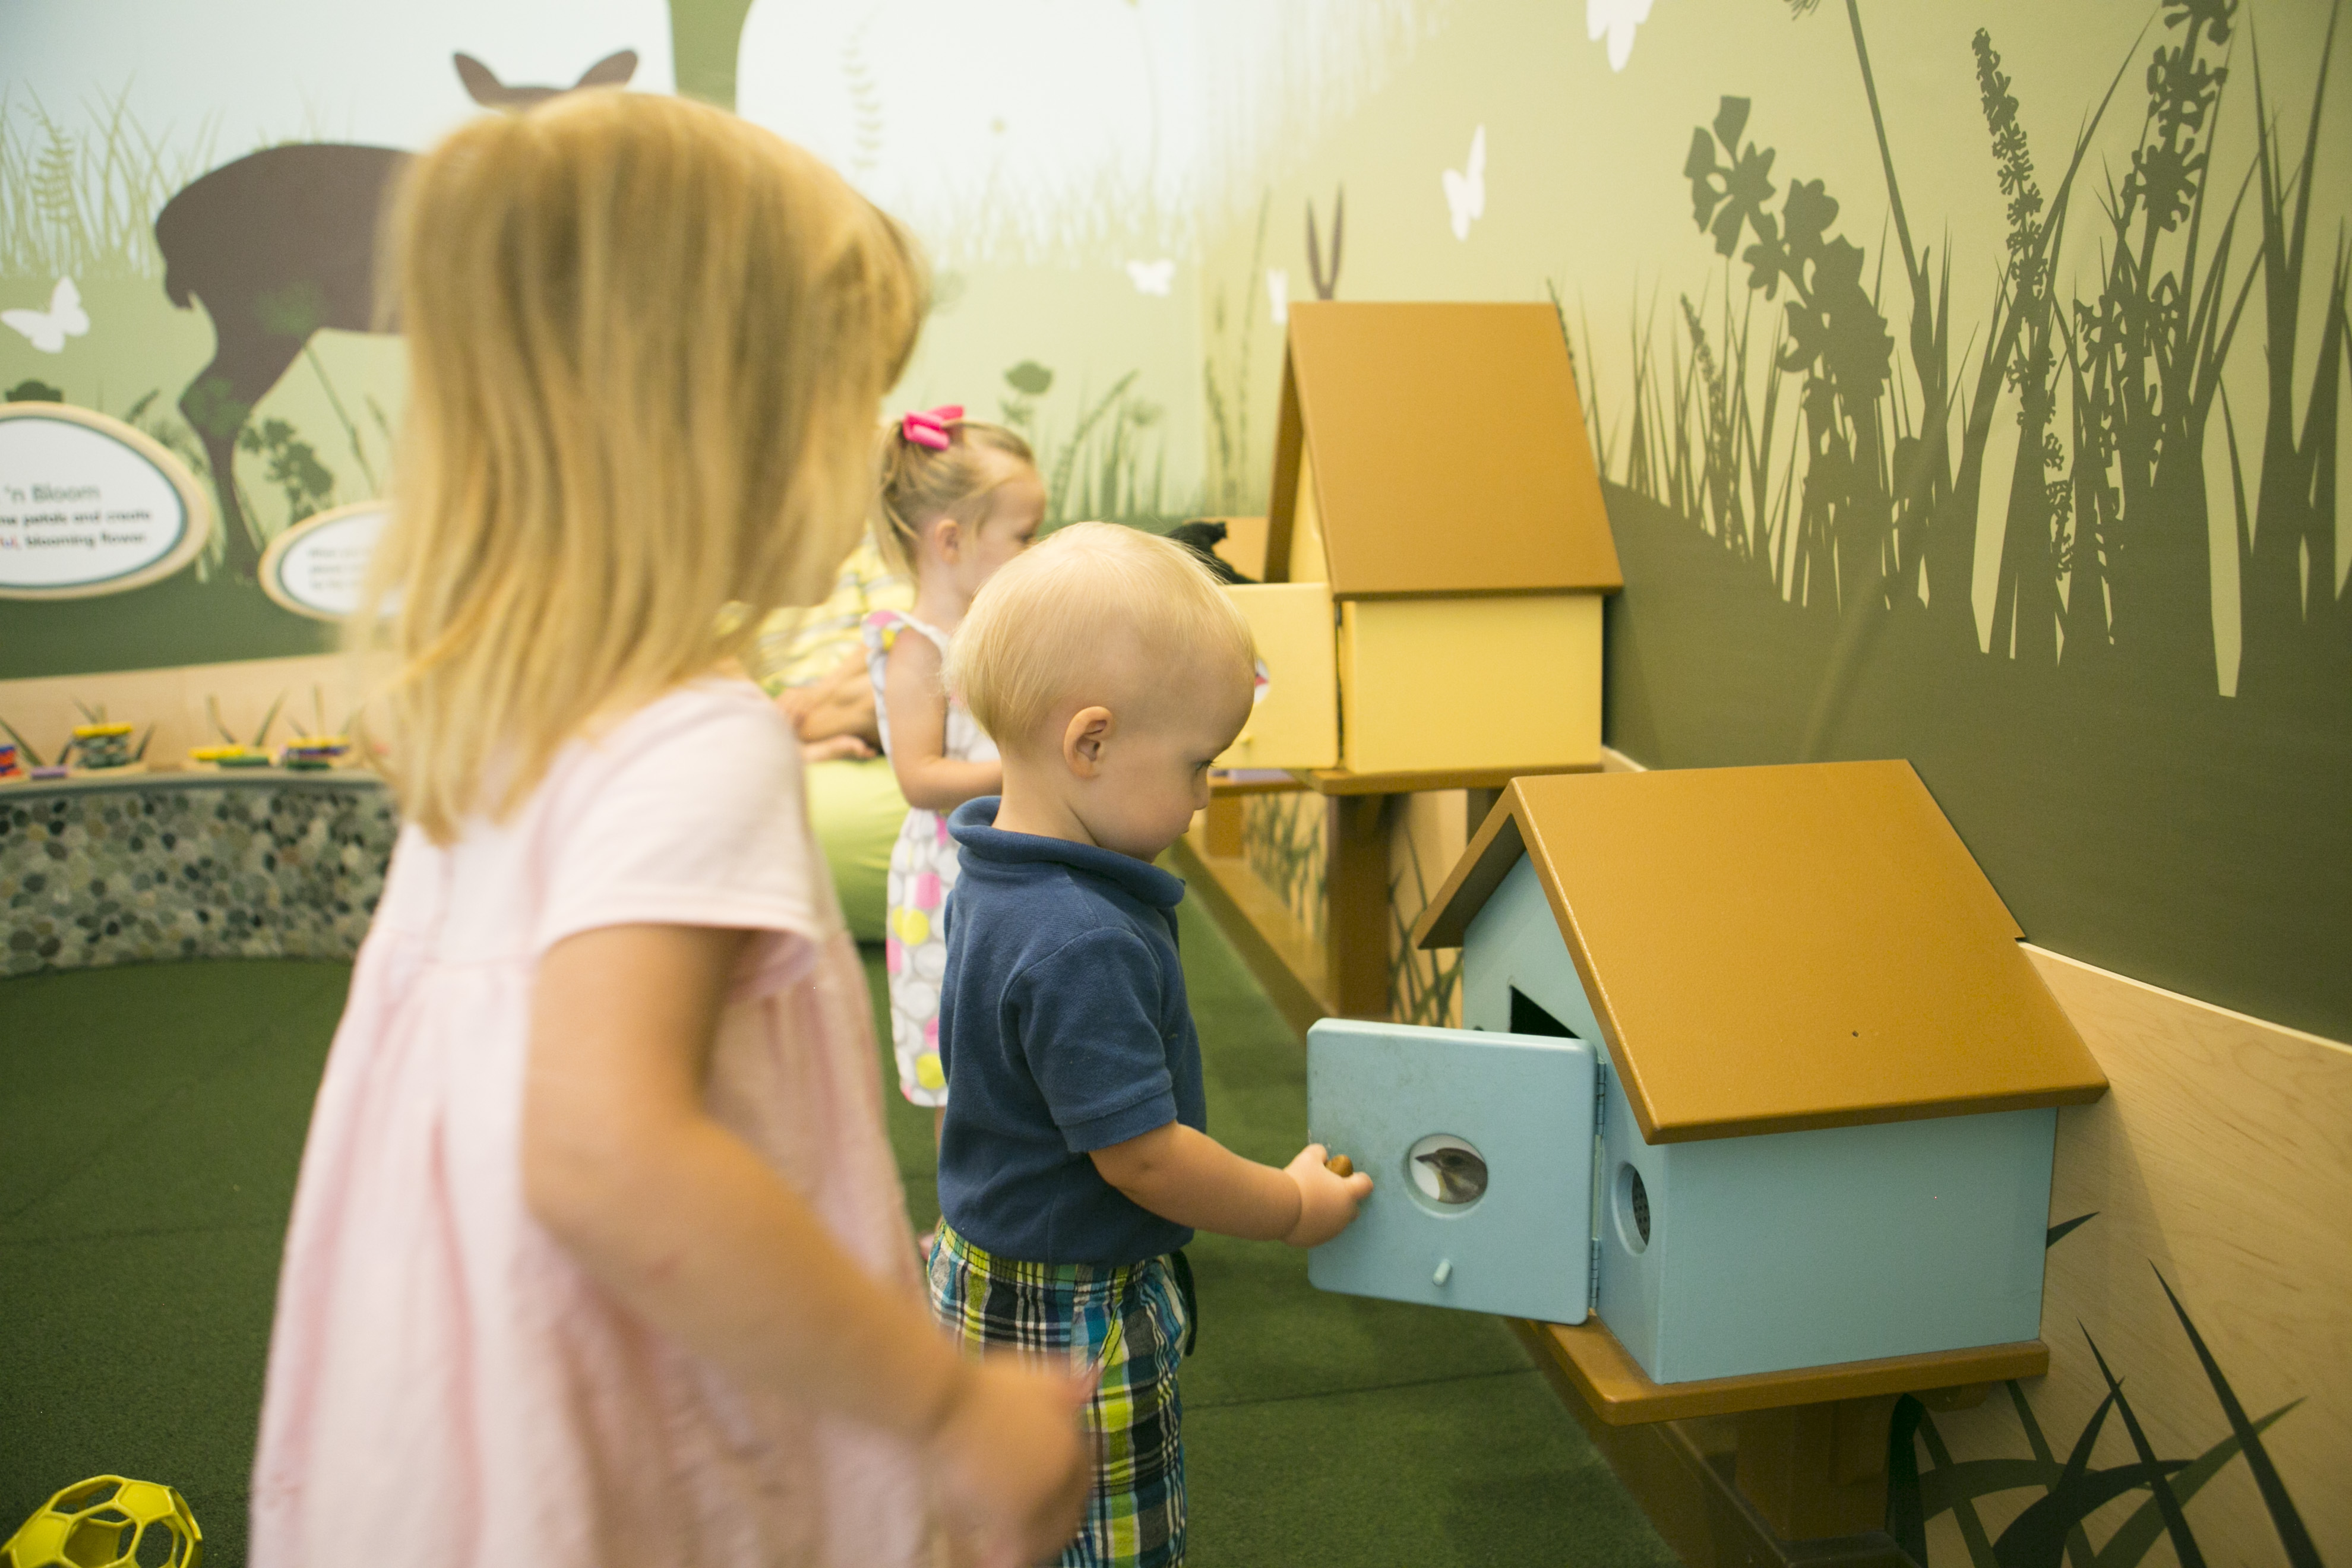 Indianpolis_Childrens_Museum-001_21